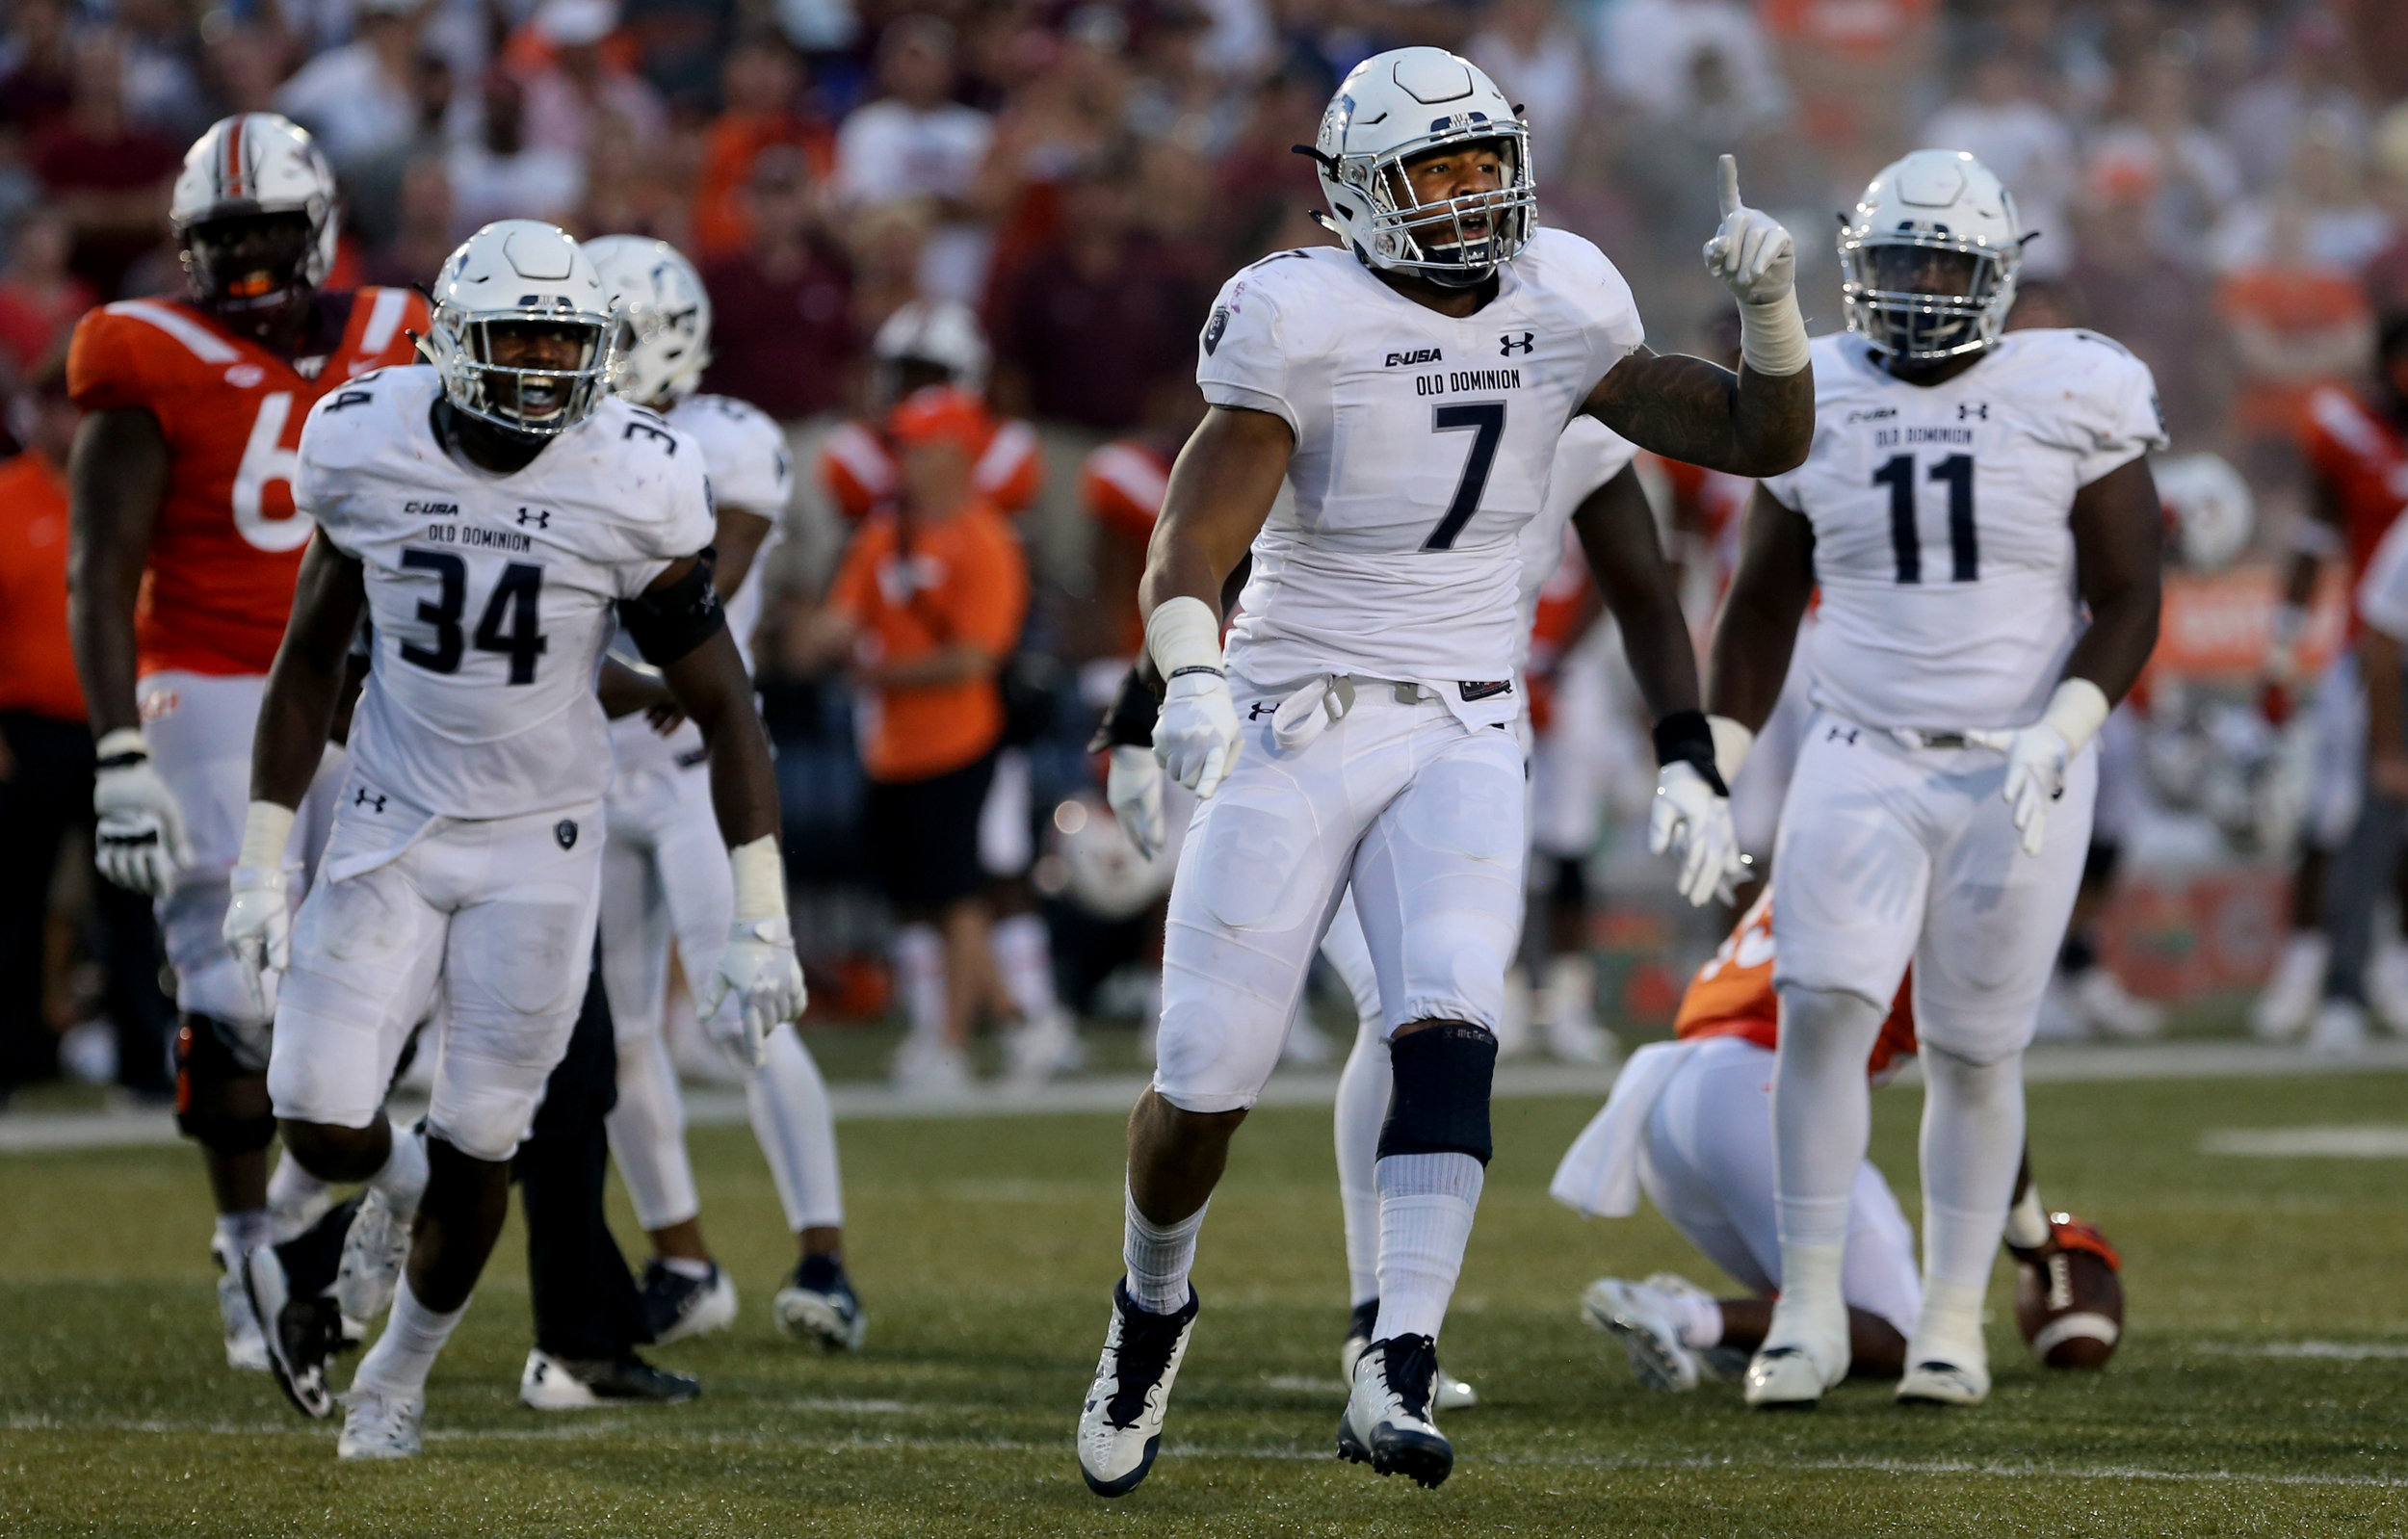 Old Dominion's Oshane Ximines reacts after a first down during the second half of an NCAA college football game, Saturday, Sept. 22, 2018, in Norfolk, Va. Old Dominion won 49-35. (AP Photo/Jason Hirschfeld)